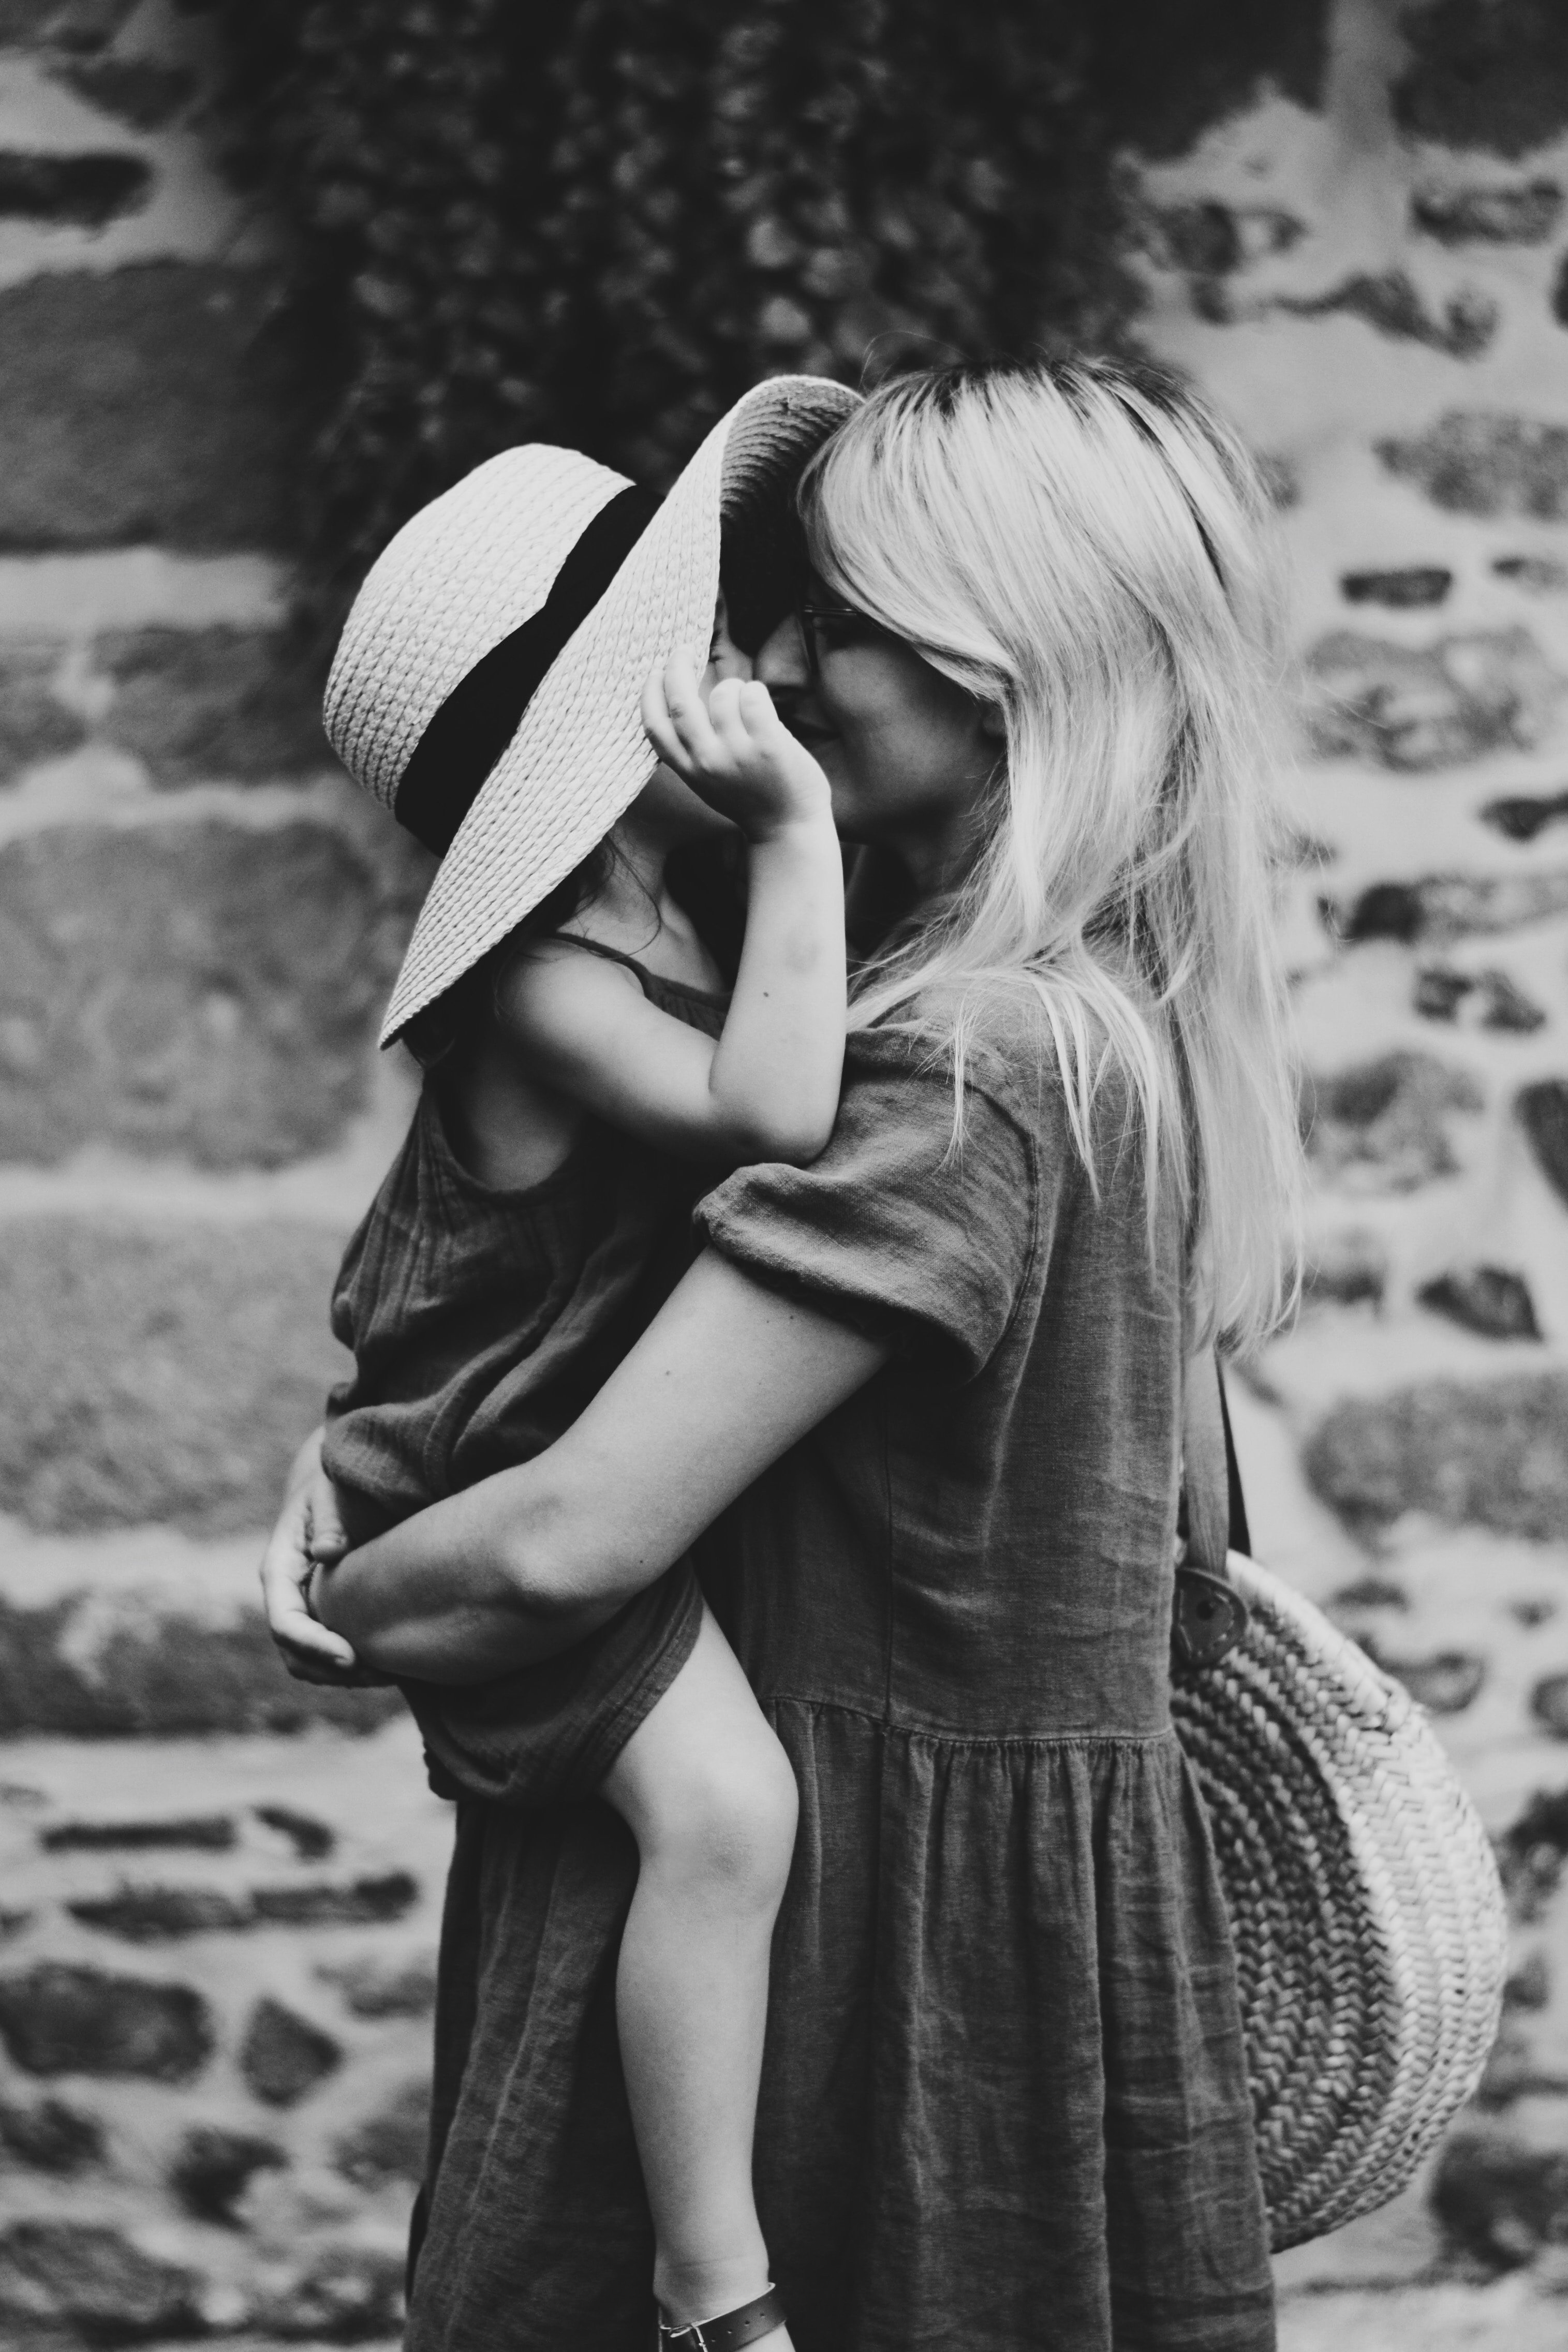 A monochrome picture of a mother and daughter. | Source: Unsplash